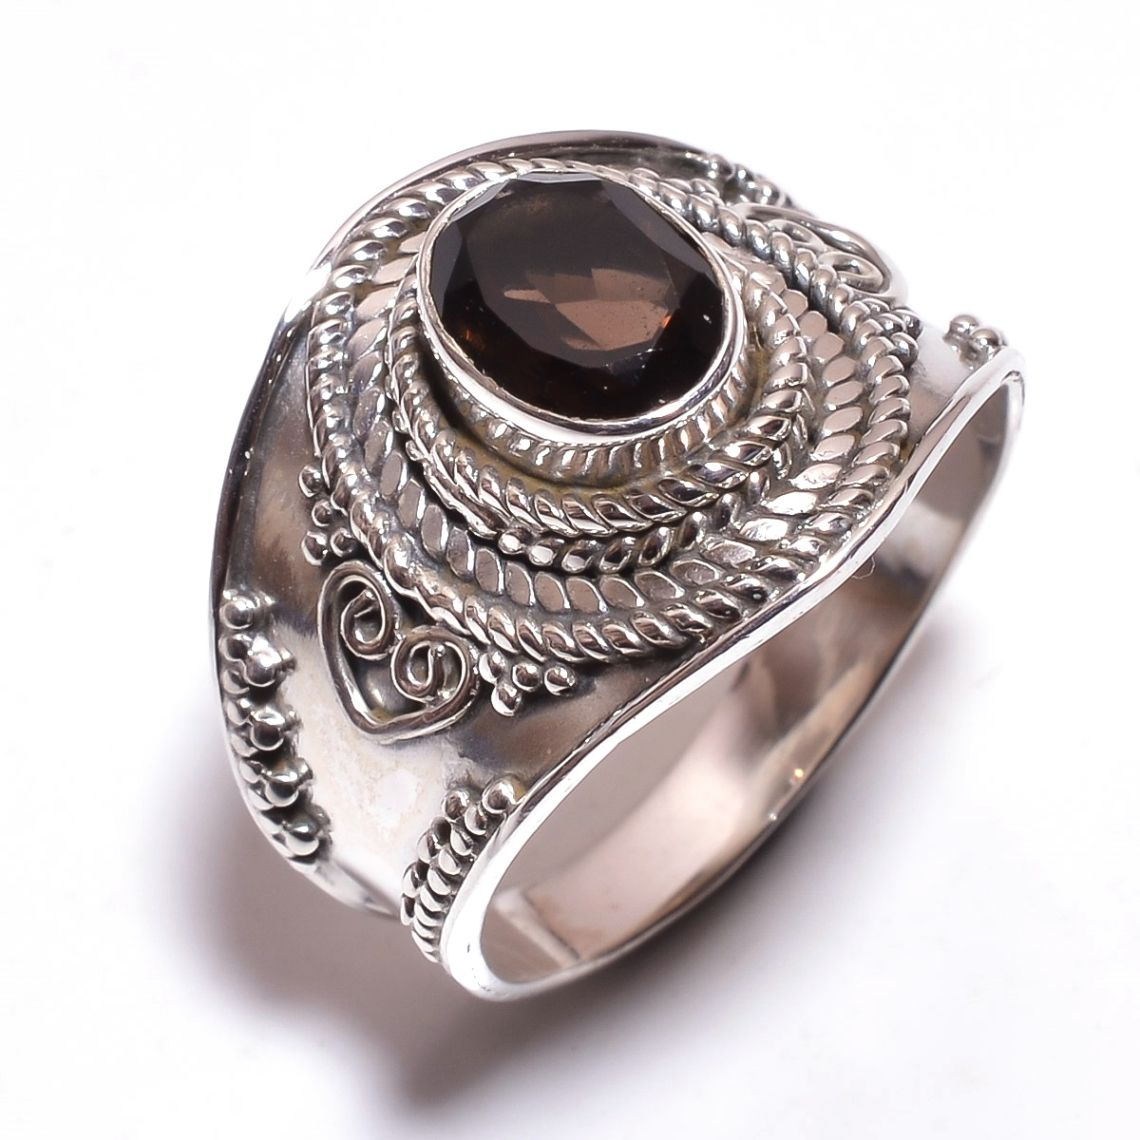 Smoky Gemstone 925 Sterling Silver Ring Size 8.5